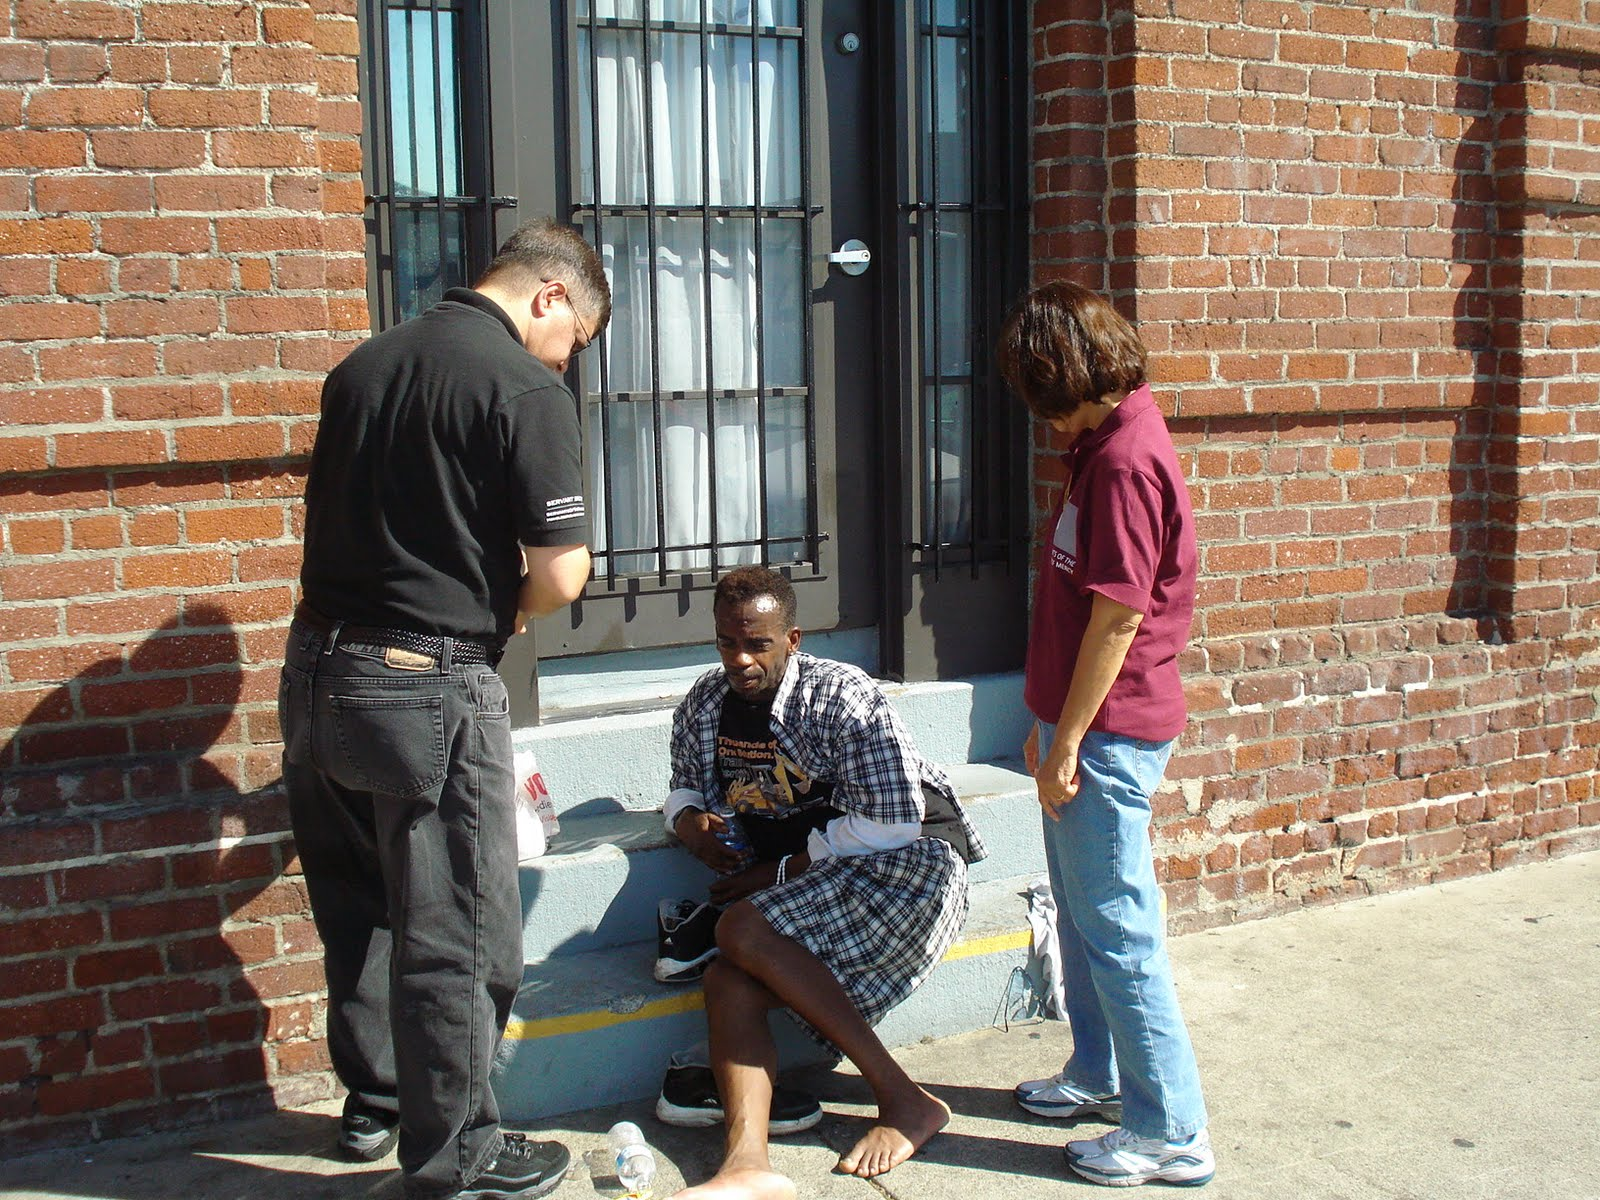 Homeless in America: A Day with the Homeless in Pictures